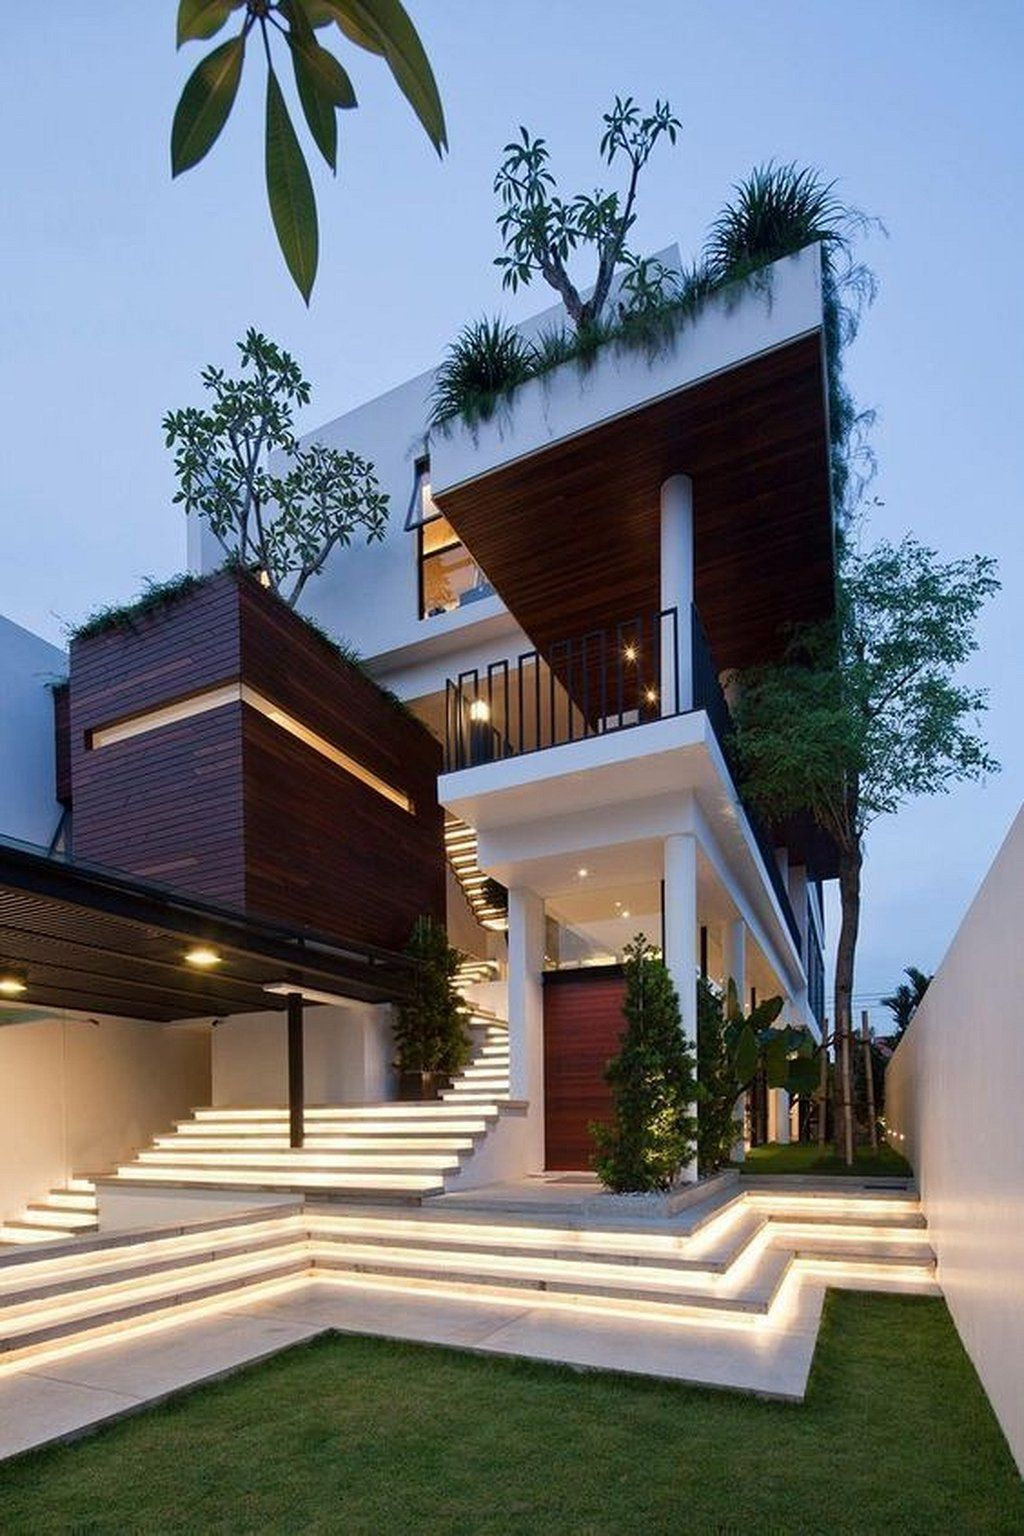 Best architecture homes ideas inspirations https mobmasker also dream house  tram anh in pinterest design rh